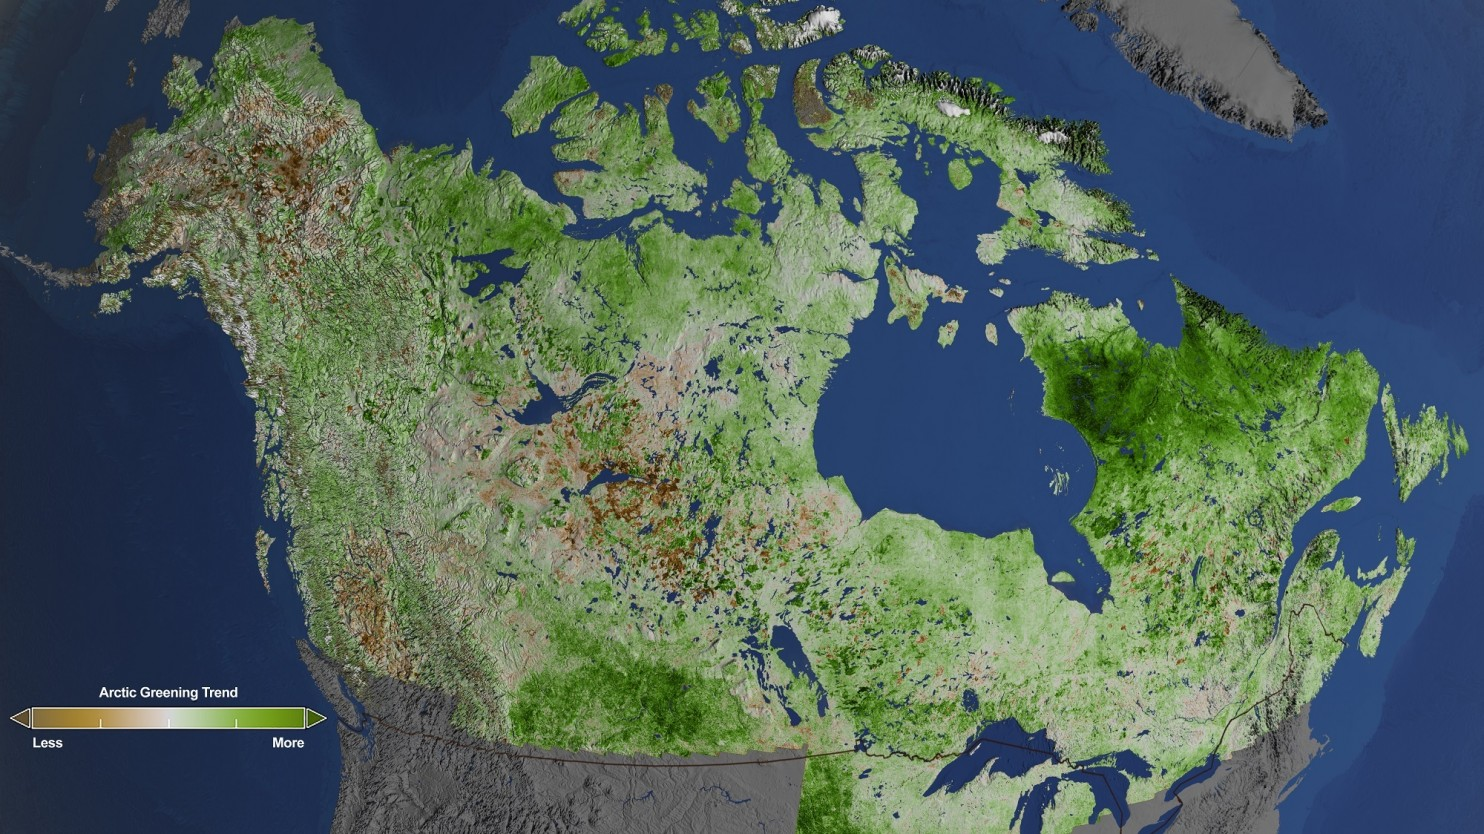 Thanks to climate change, the Arctic is turning green